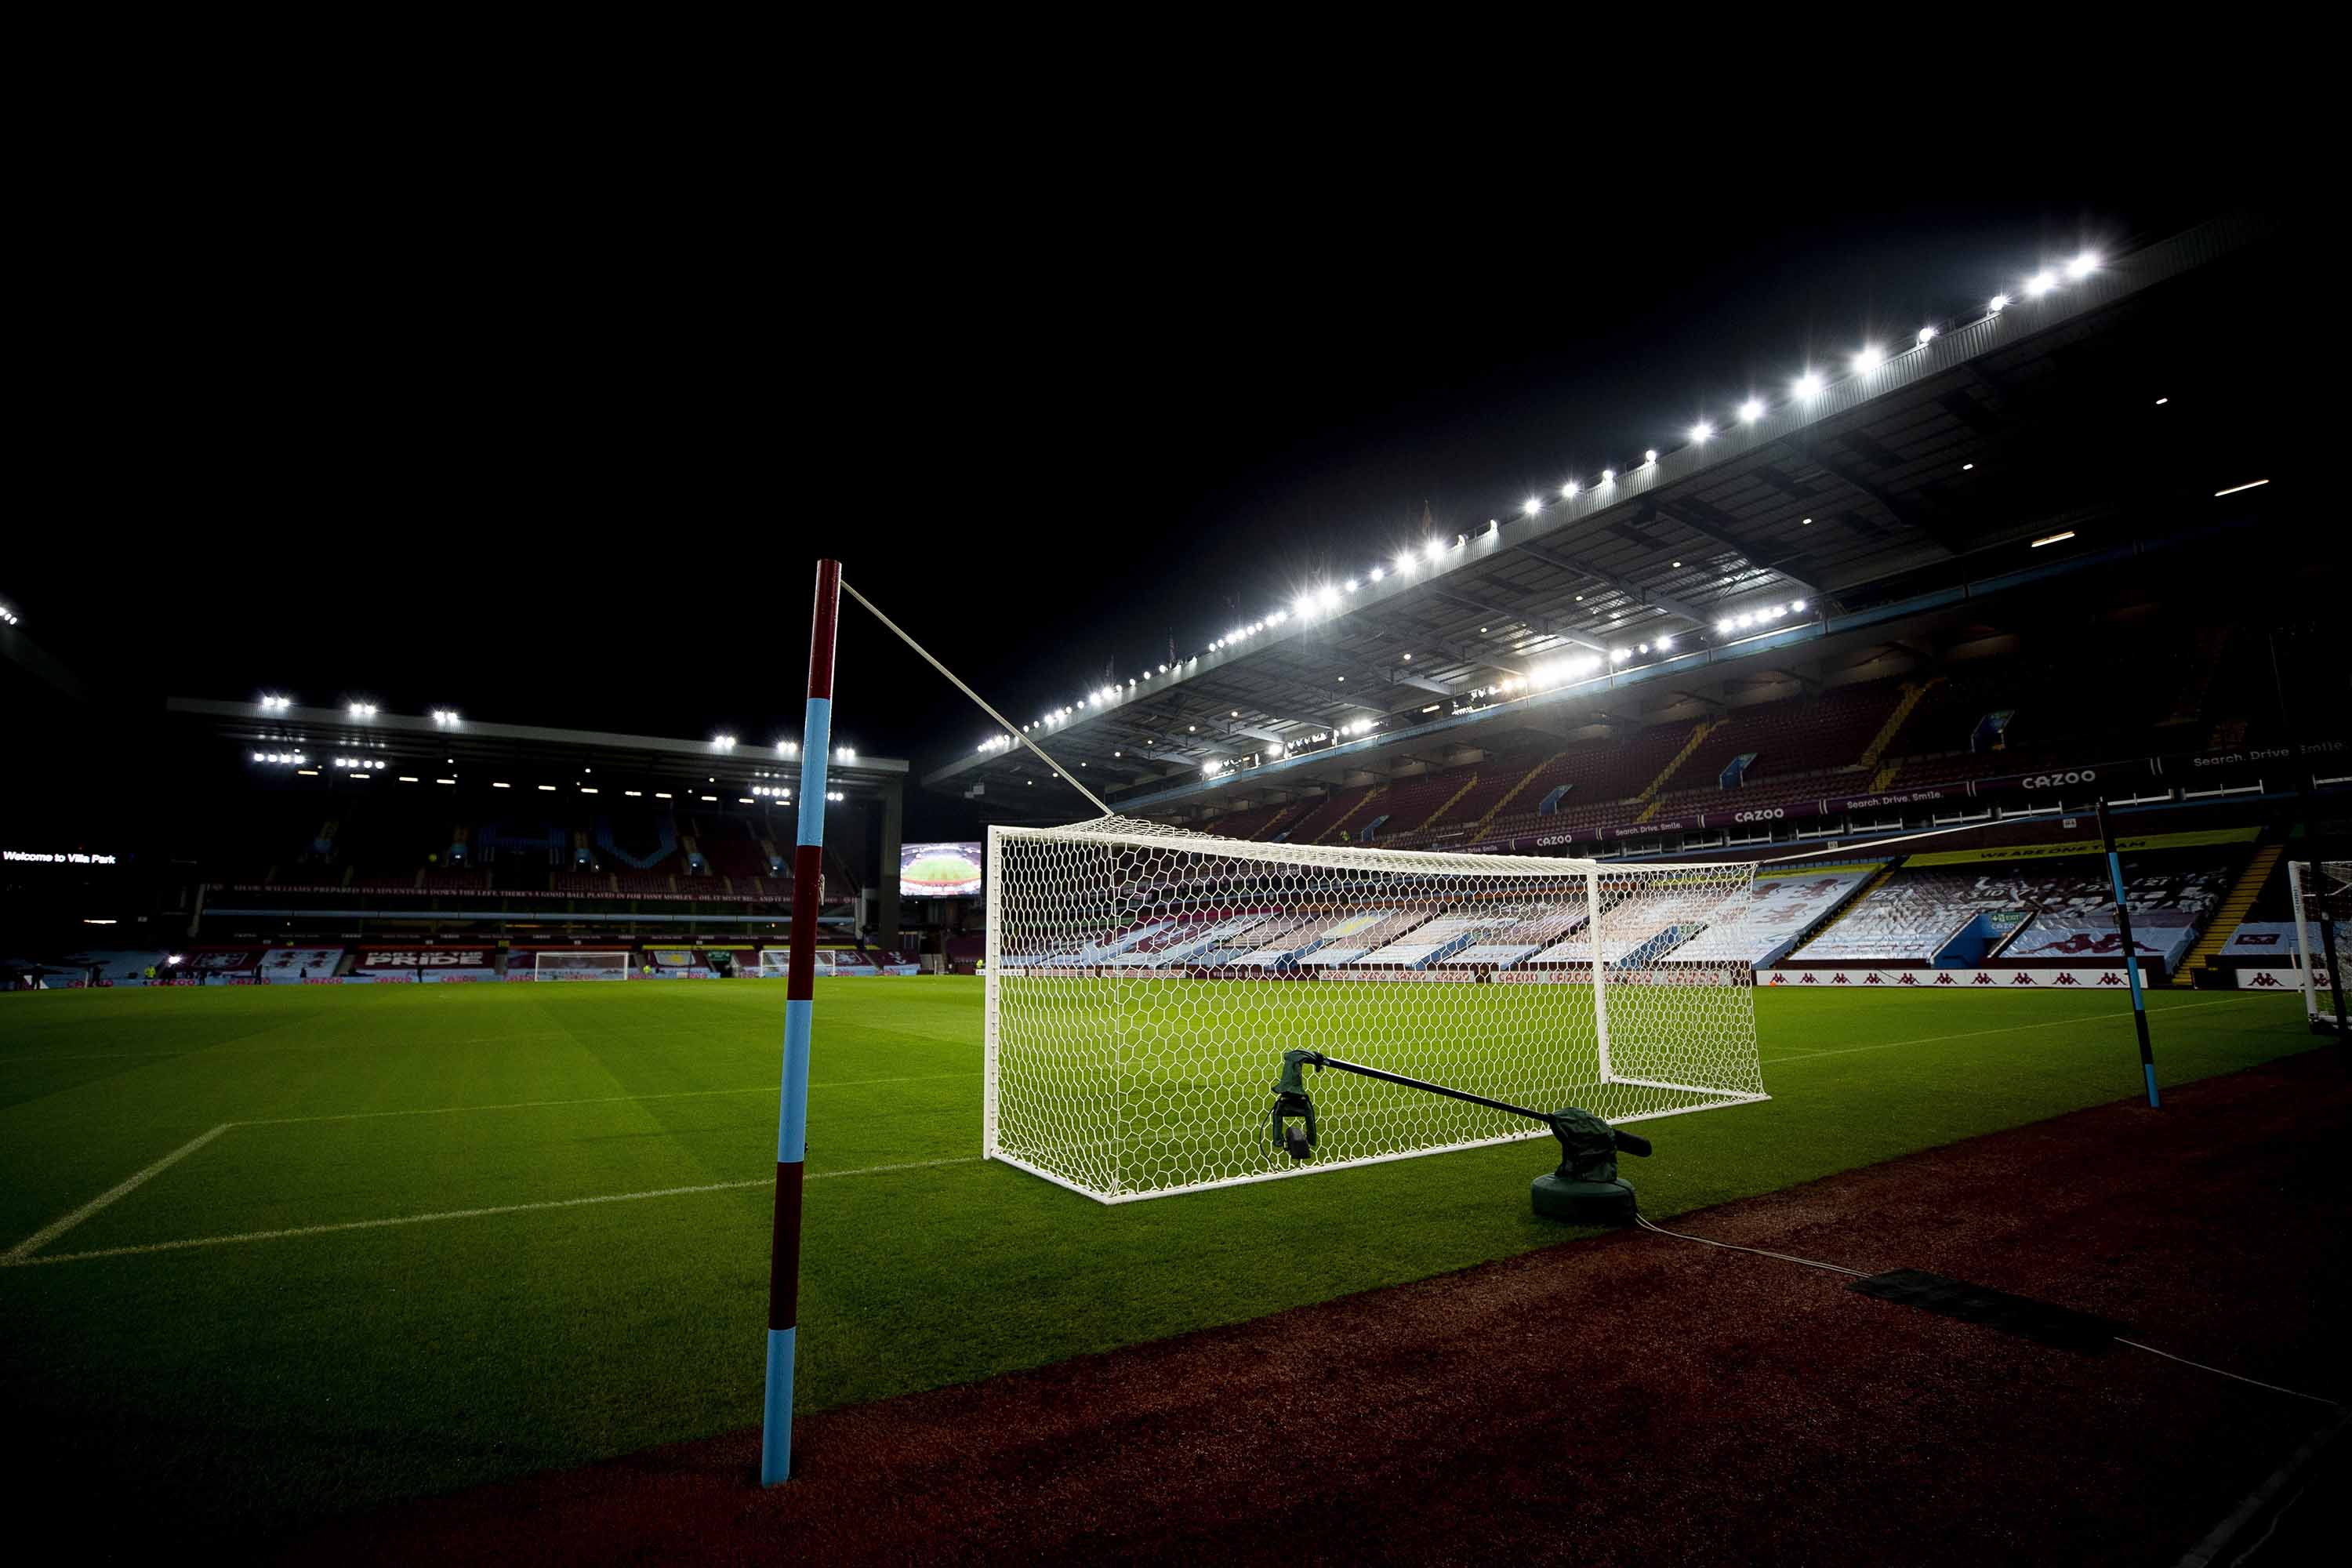 Villa Park, home of Aston Villa, before a match on January 8, in Birmingham, England.